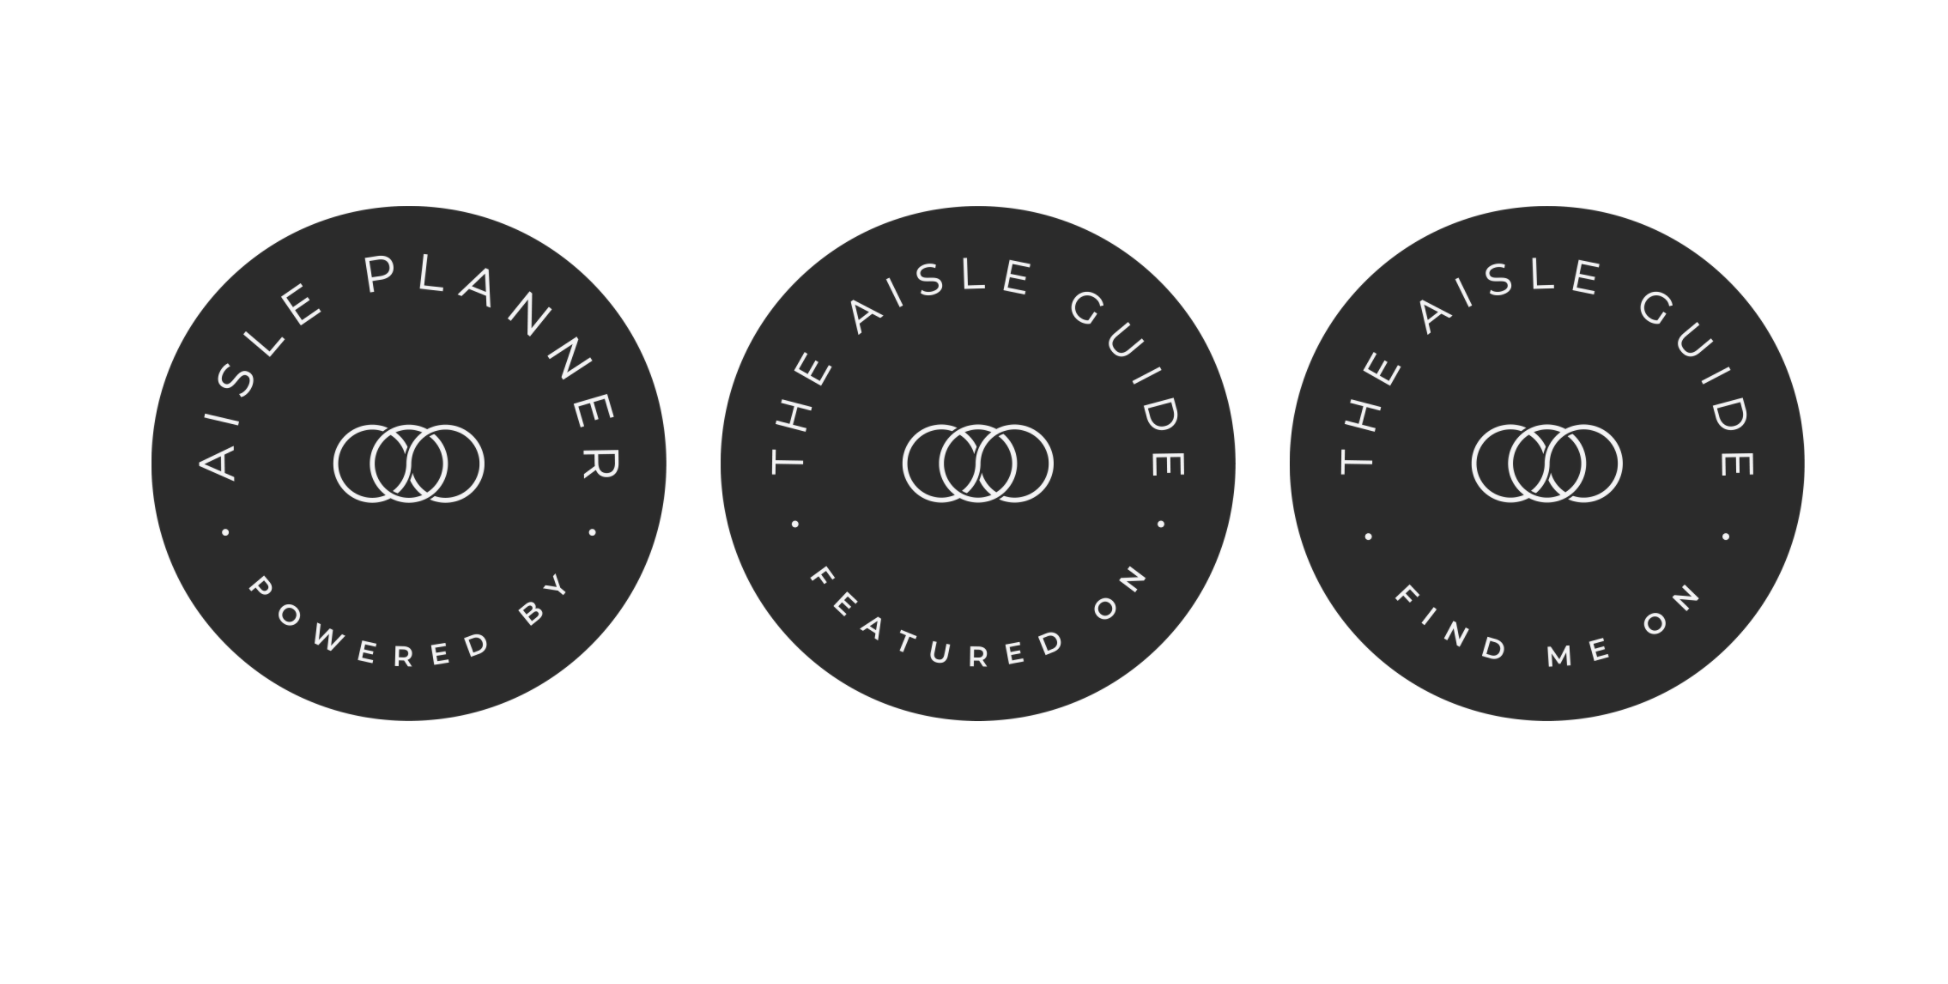 The Aisle Guide Badges